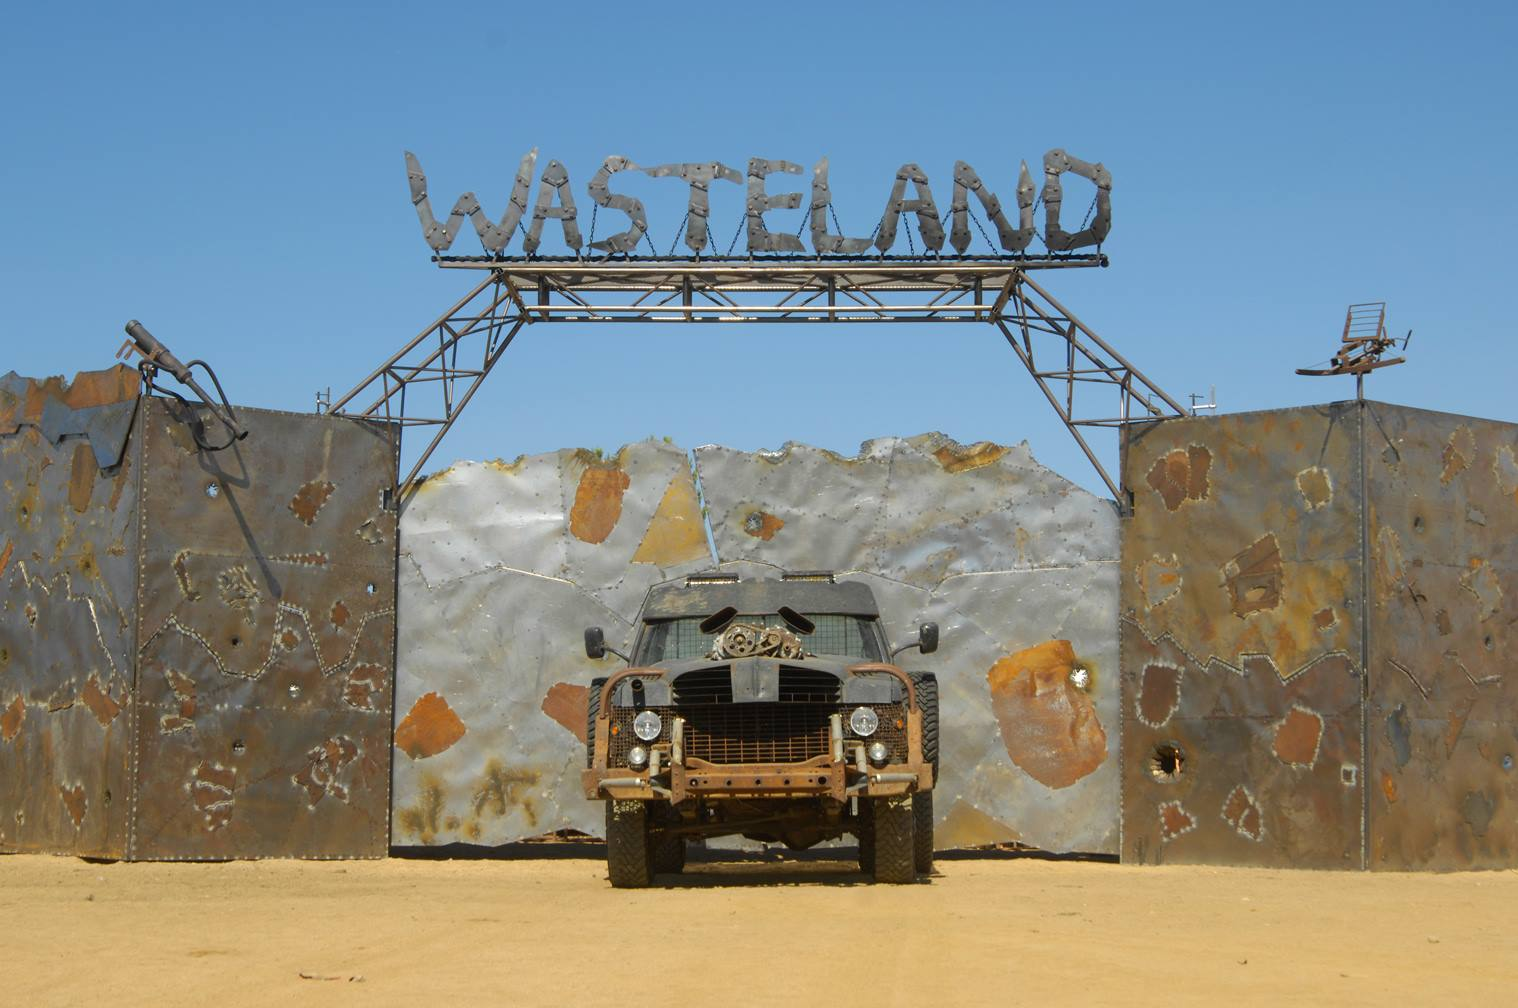 The story of Wasteland Weekend